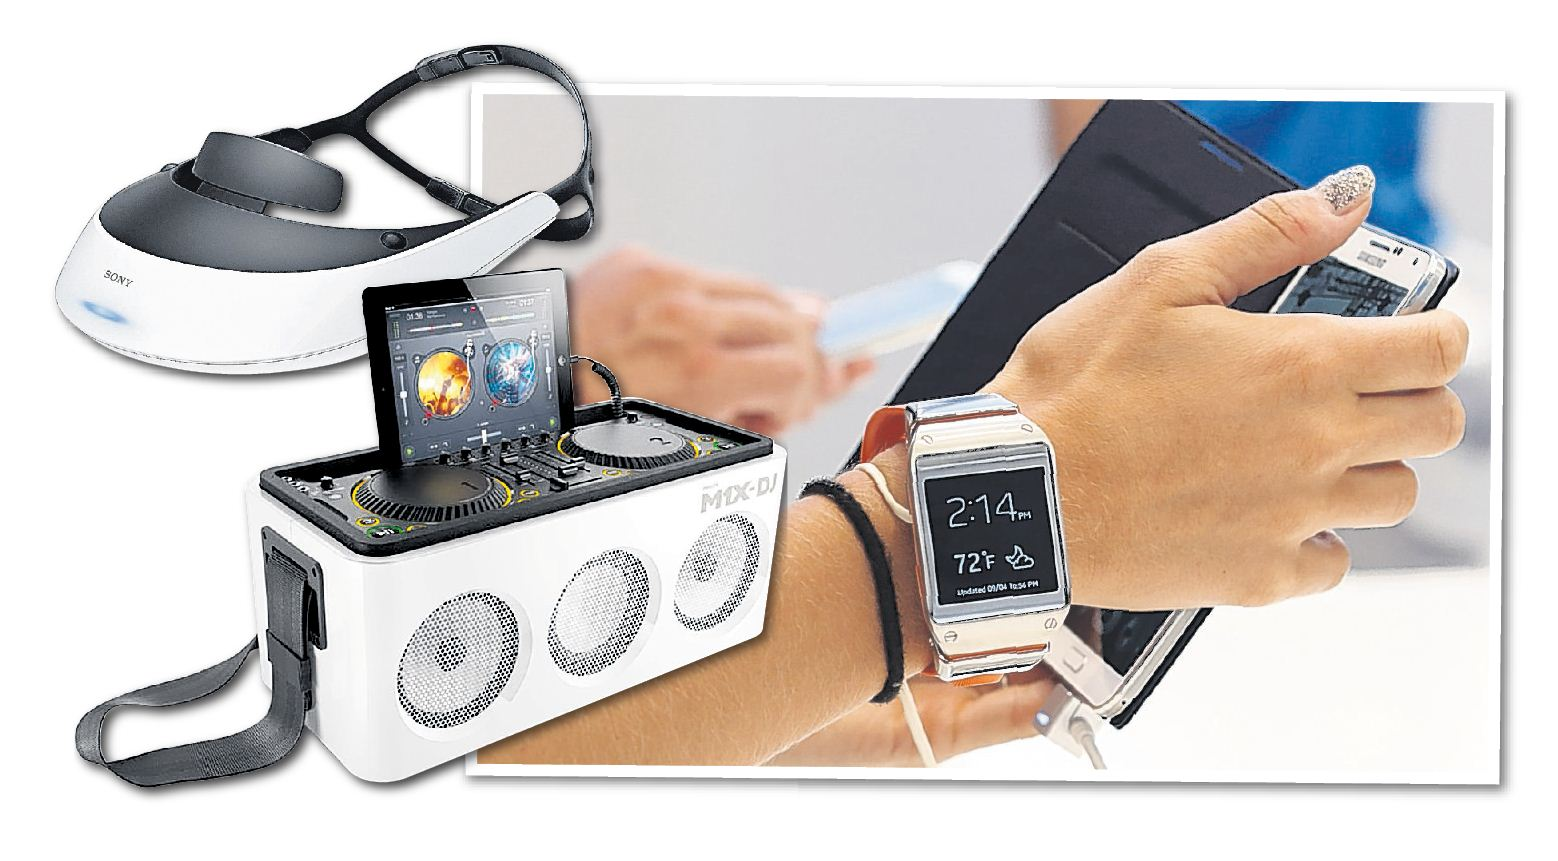 The gadgets on show at IFA Berlin include Samsung Galaxy Gear, M1x-DJ, Galaxy Note and Sony HMZ-T3 (Picture: supplied)